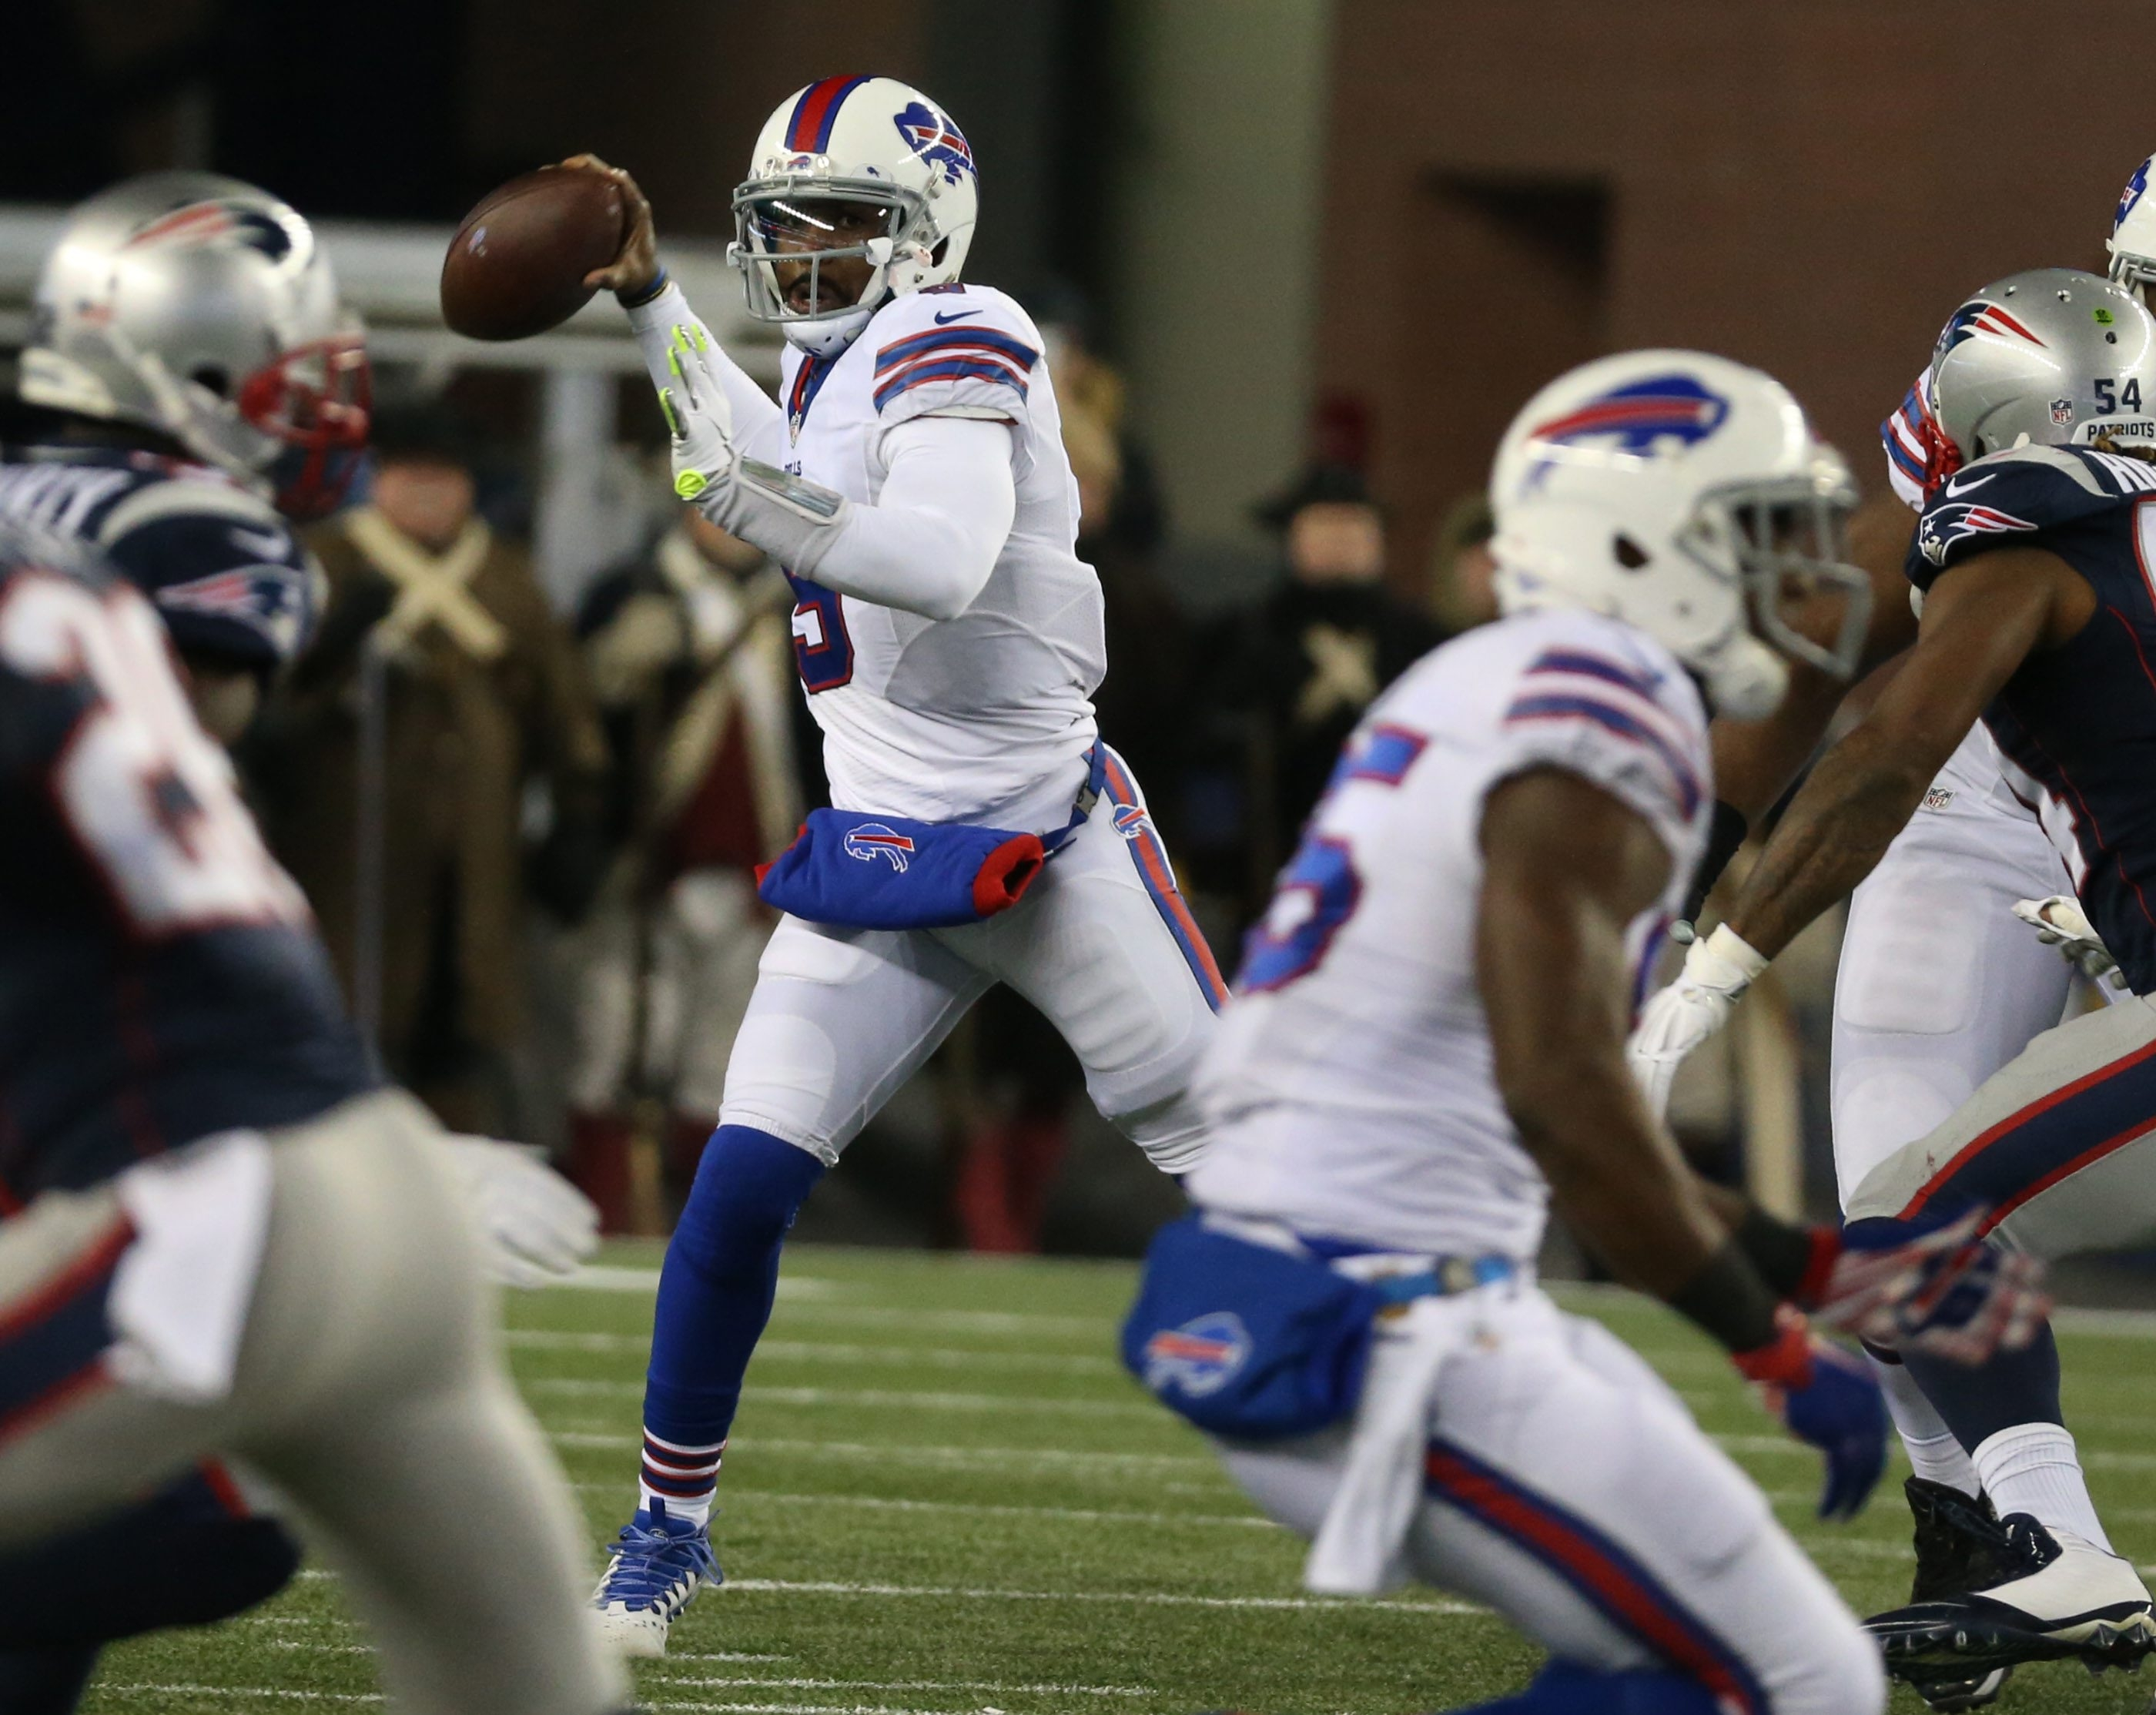 Buffalo Bills quarterback Tyrod Taylor (5) throws a pass in the second quarter at Gillette Stadium in Foxboro, Mass. on Monday, Nov. 23, 2015.  (James P. McCoy/ Buffalo News)